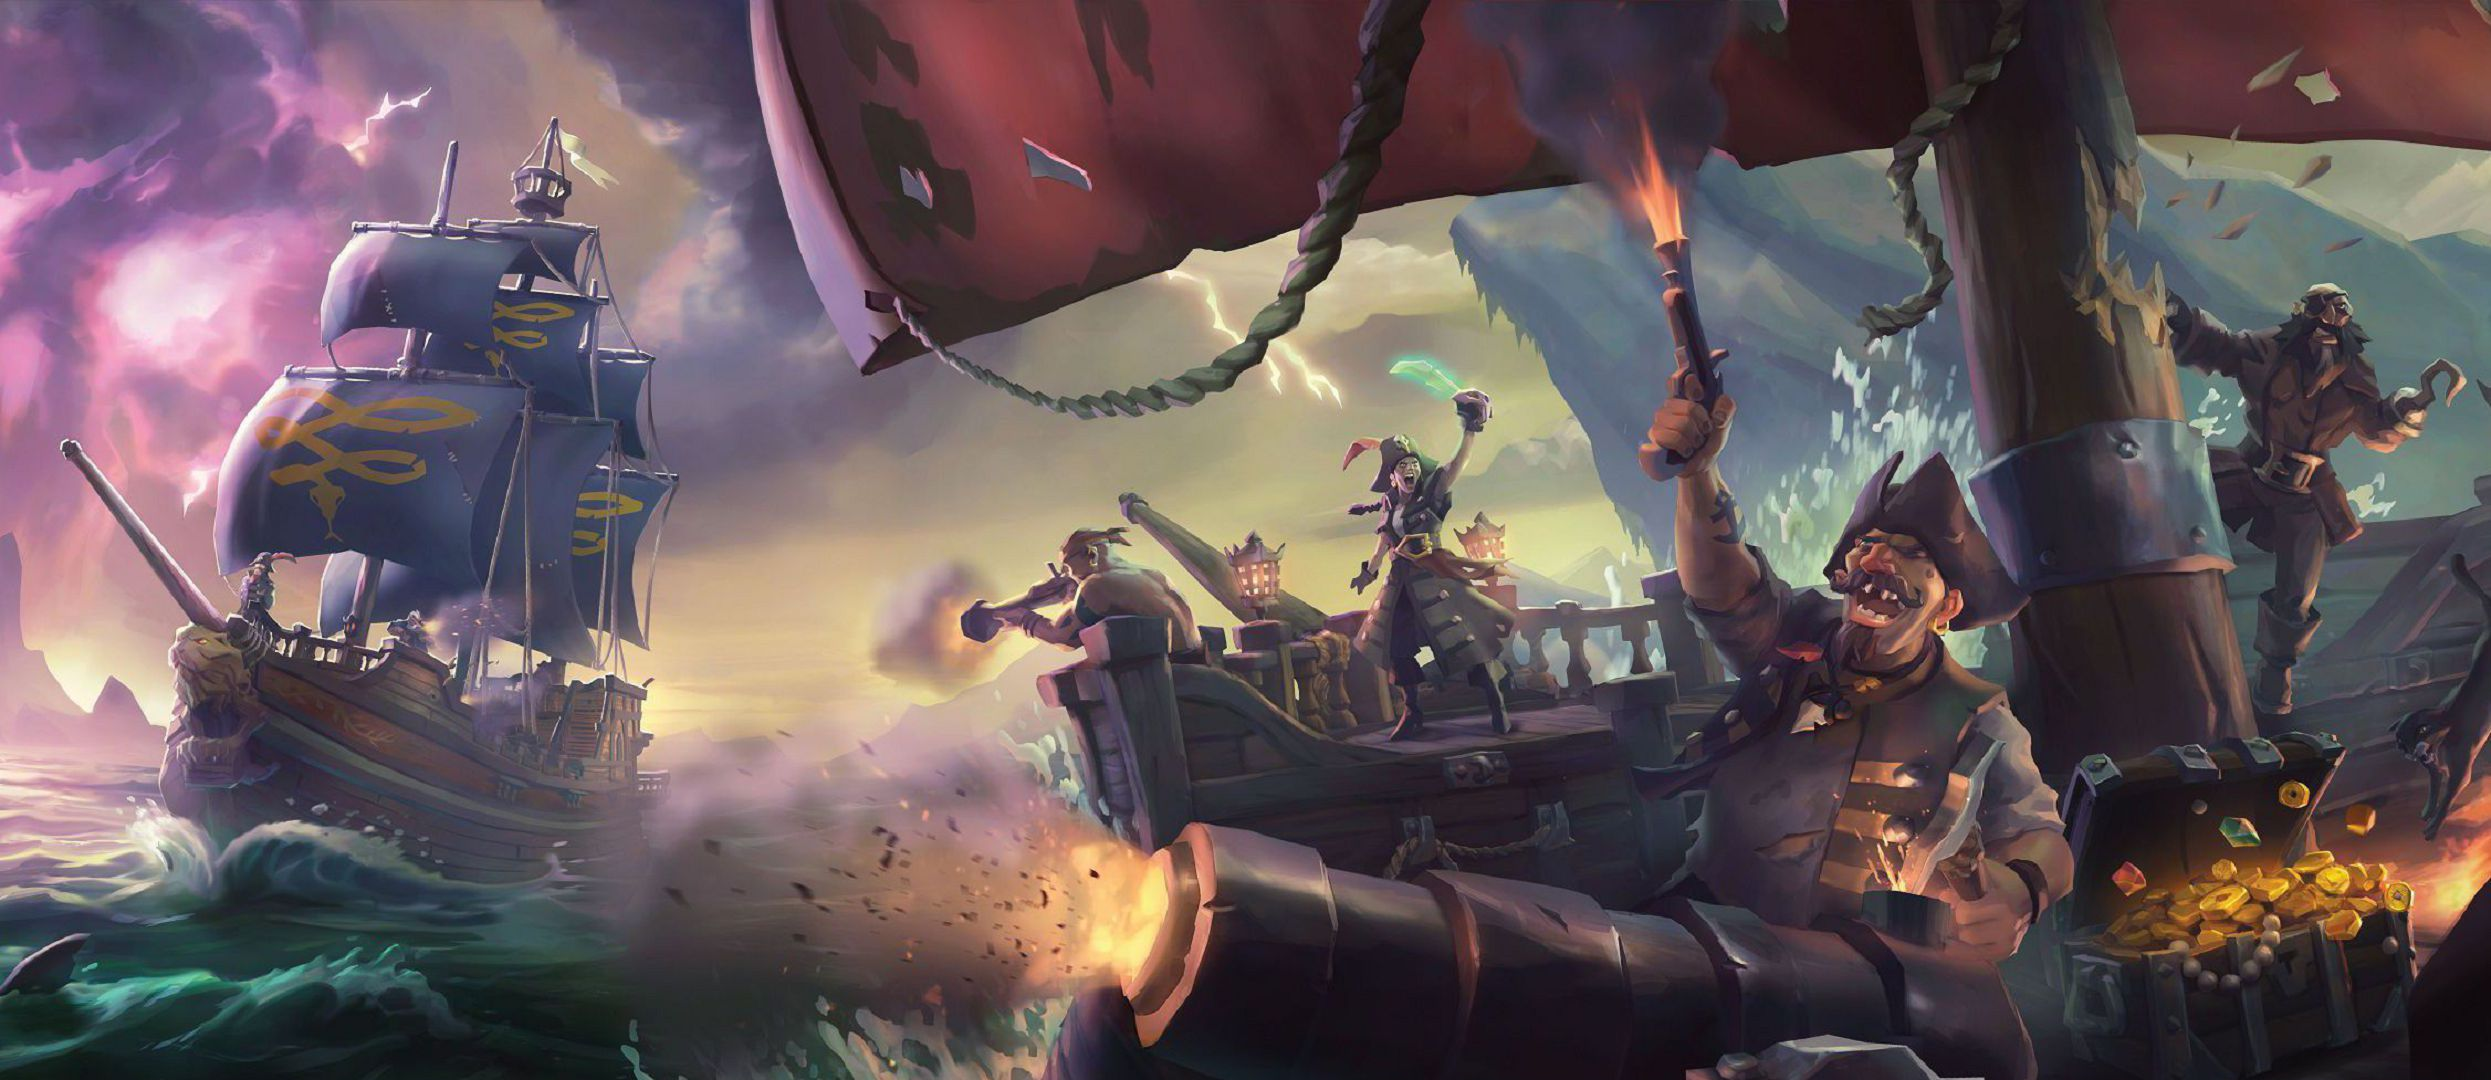 Sea Of Thieves Wallpaper Pack